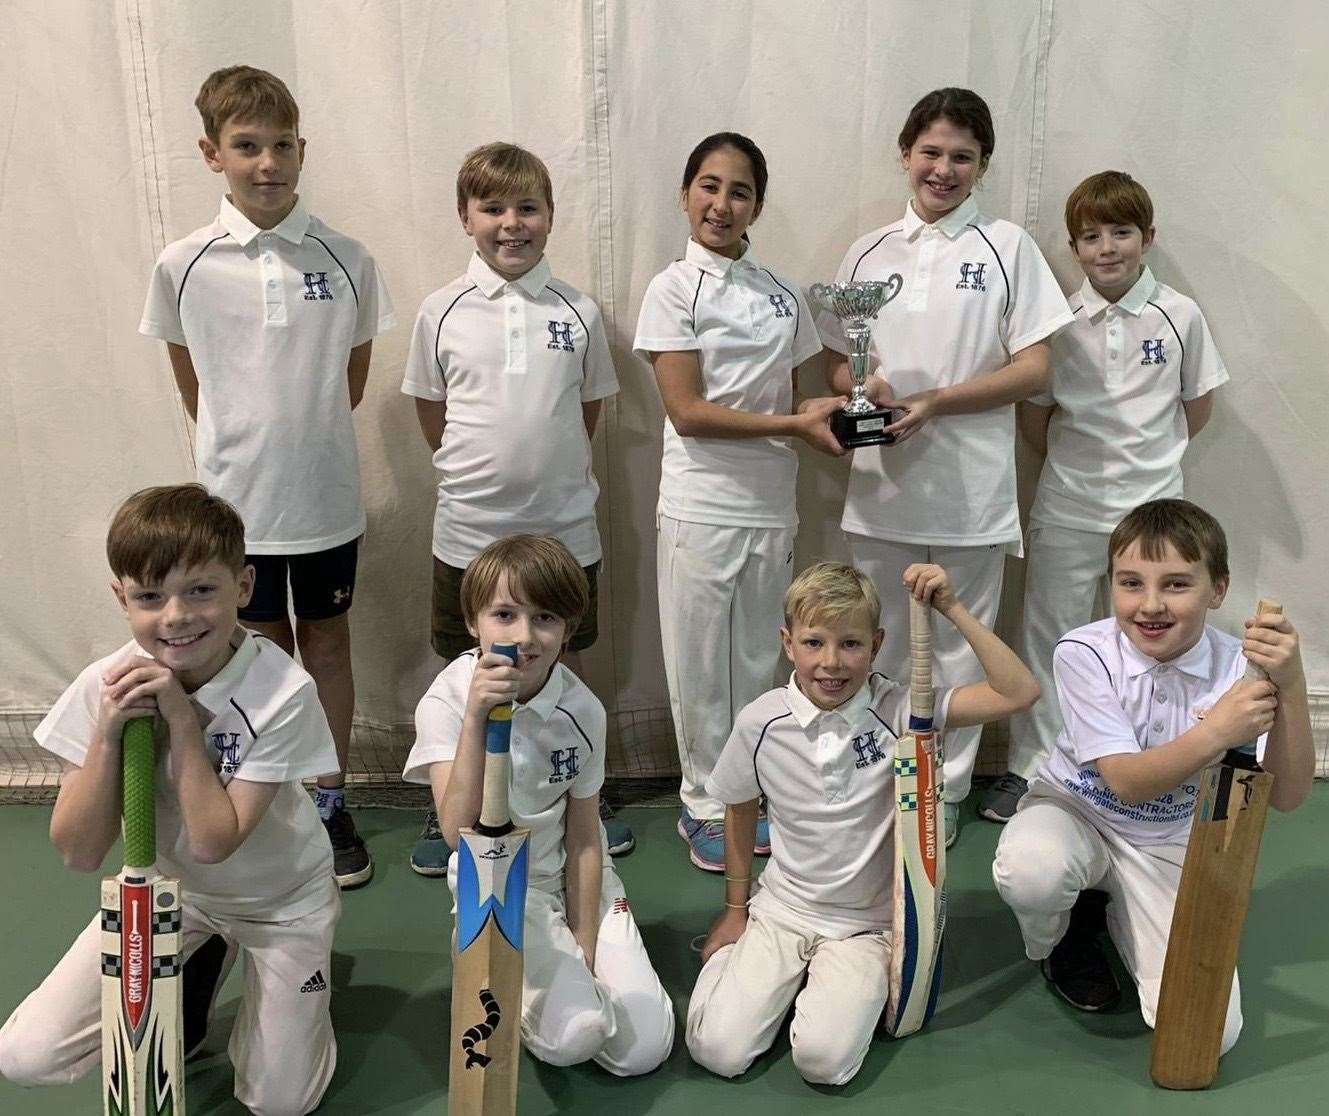 Hockerill Cricket Club's title-winning under-10s. Back row, from left, Tyler Purton, Bear Gatland, Eliza Raja, Megan Laws, Seth Mulvey; front row, from left, Stanley Andrews, Marco Lamont, Jensen Osborne, Barney Wescott